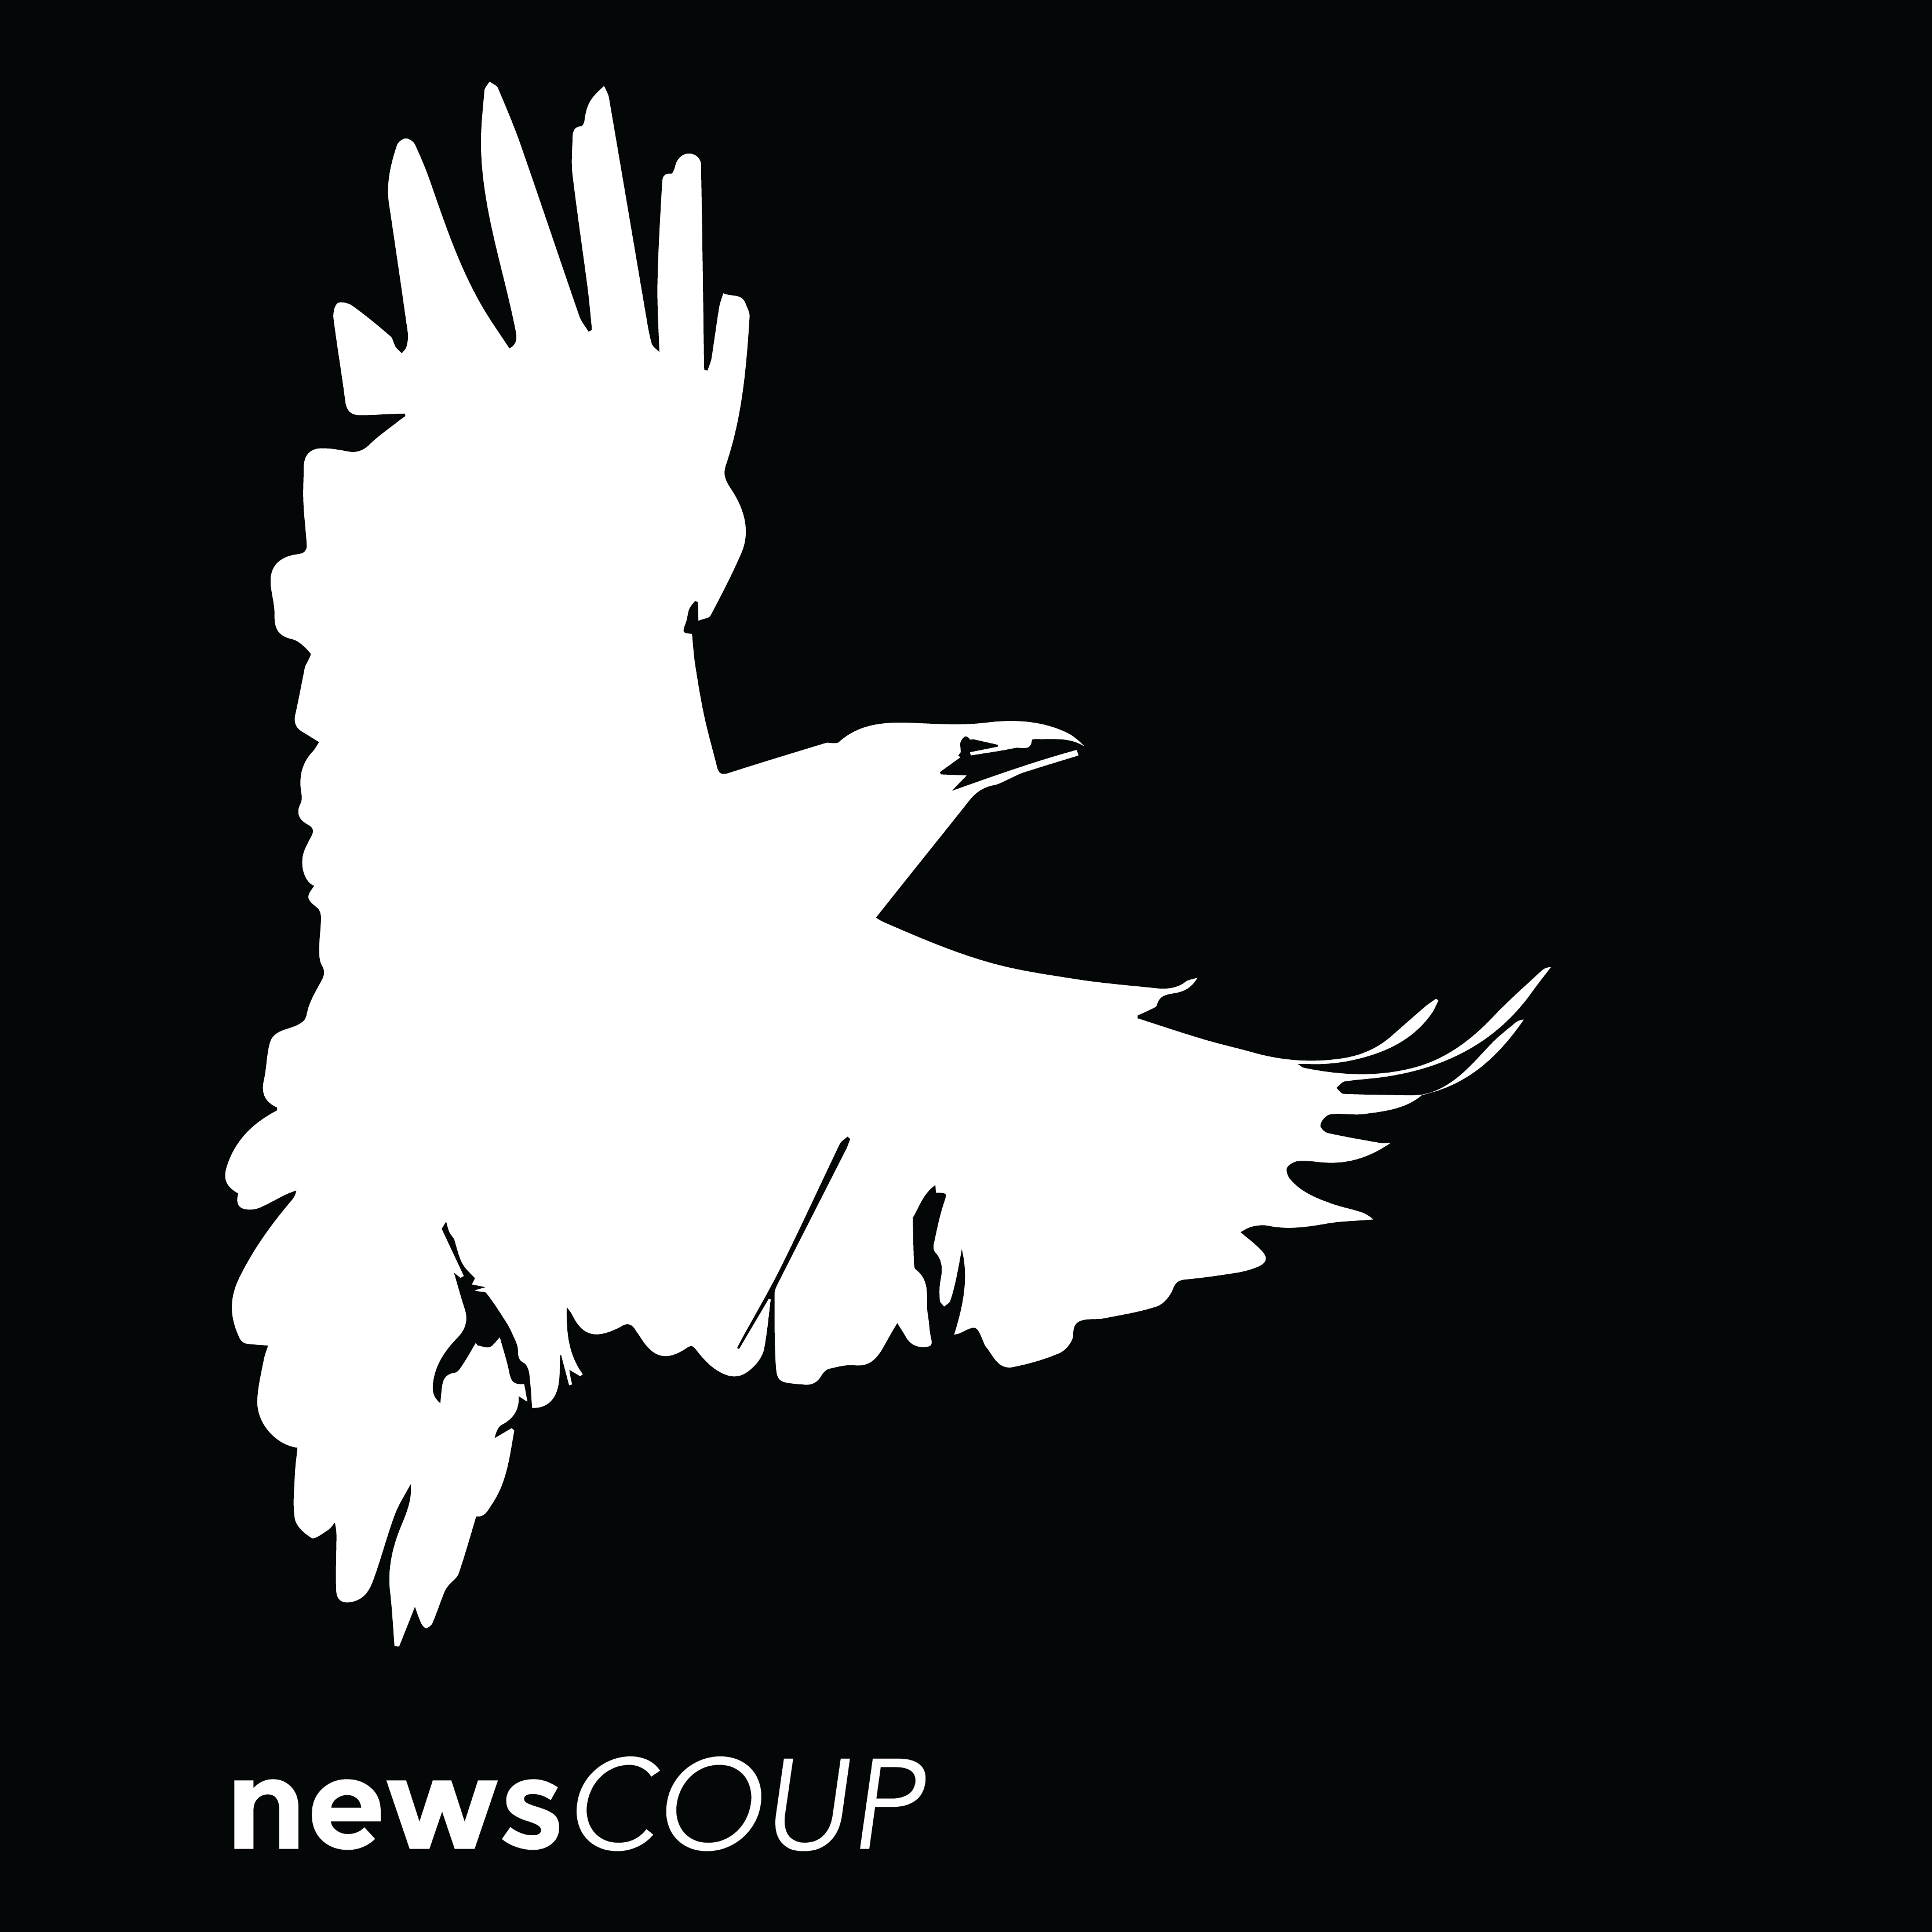 newsCOUP: Will Laws or Mass Civil Disobedience Stop Fossil Fuels?